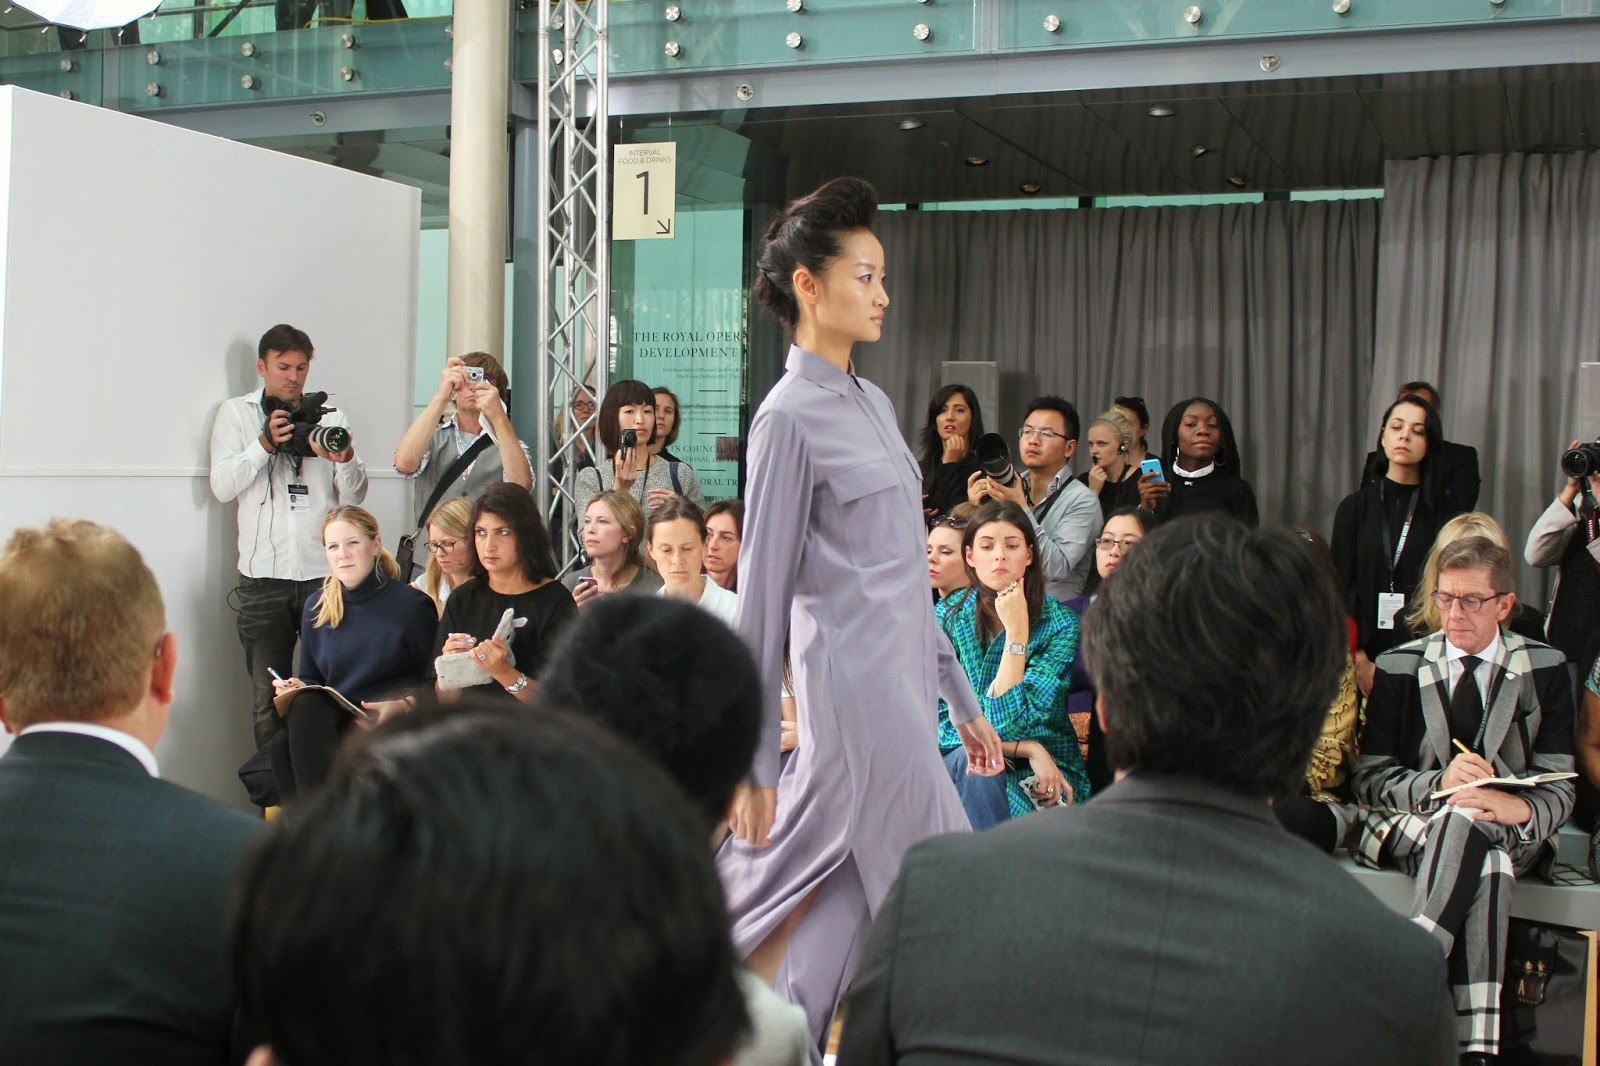 london-fashion-week-2014-lfw-DAKS-show-catwalk-spring-summer-2015-models-clothes-fashion-frow-royal-opera-house-shirt-dress